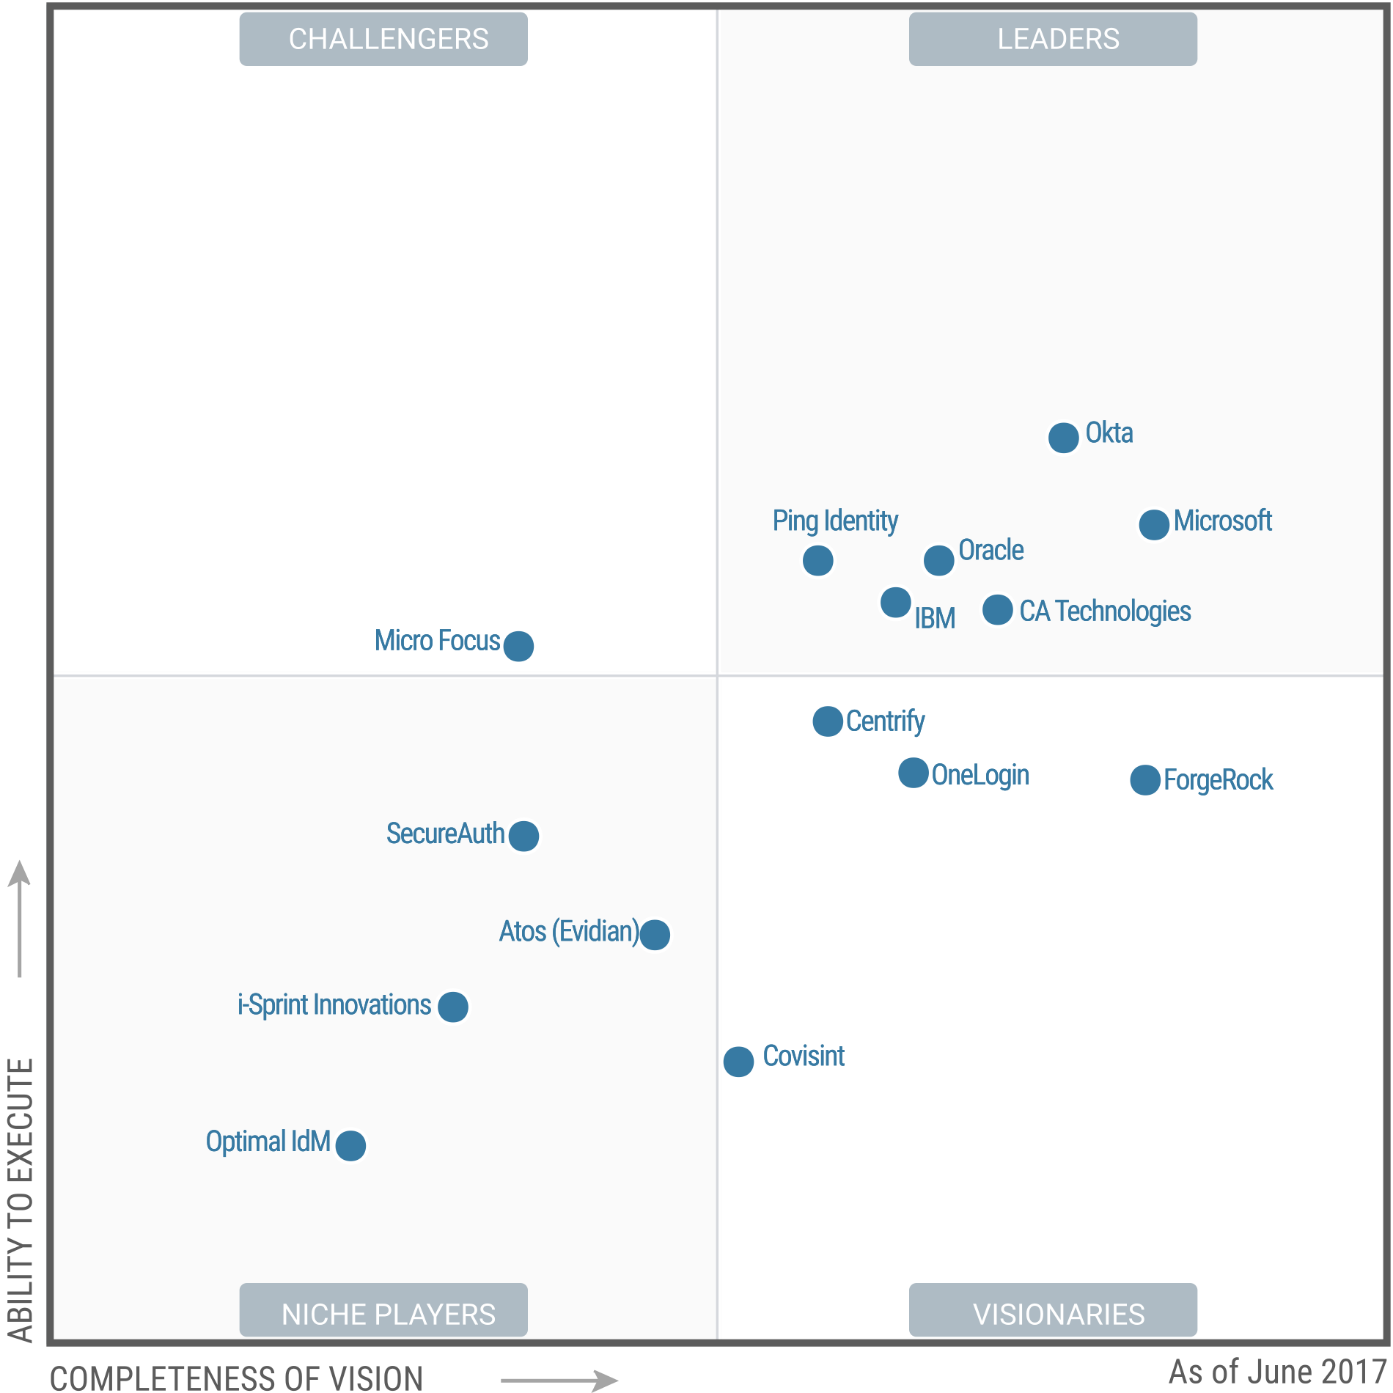 Magic Quadrant for Access Management 2017 (G00315479)